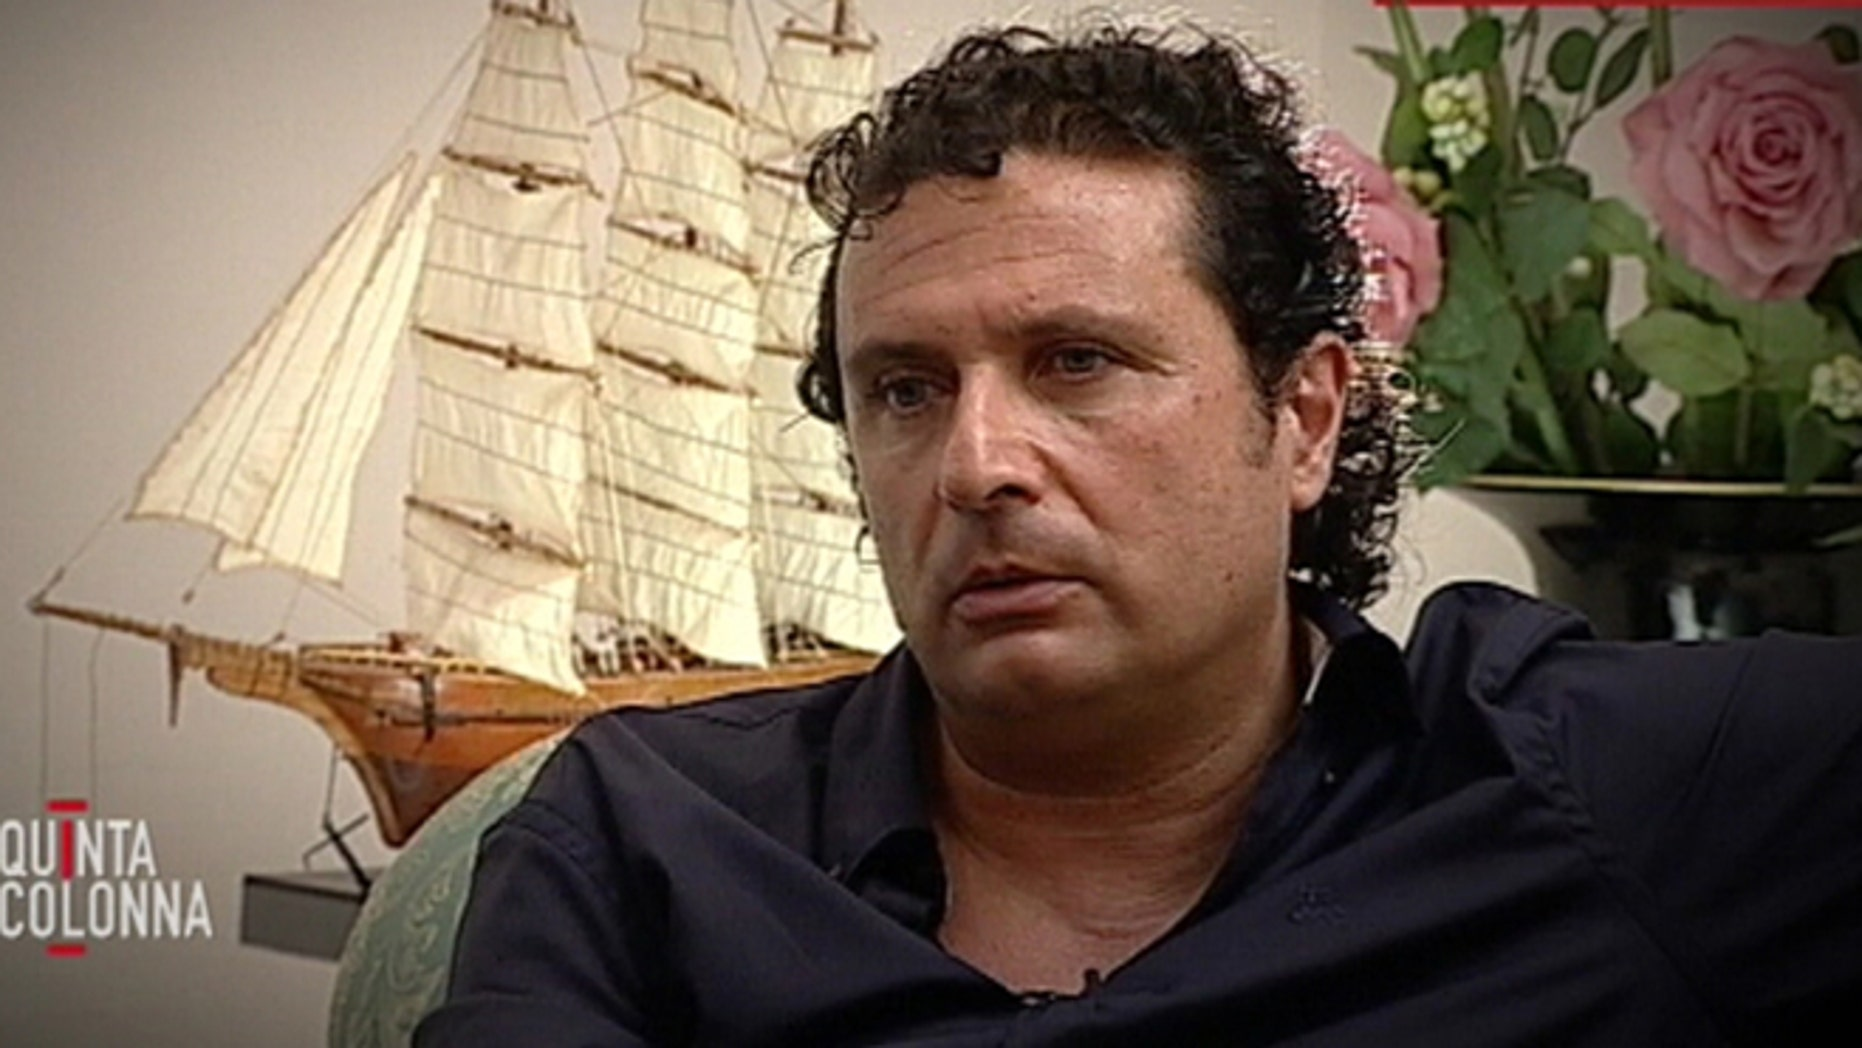 """In this frame grab taken from video and released by Italian media conglomerate Mediaset on Tuesday, July 10, 2012, Francesco Schettino is seen during an exclusive interview to the """"Quinta Colonna"""" programme that was broadcast, Tuesday, July 10, 2012 on Mediaset Channel 5."""